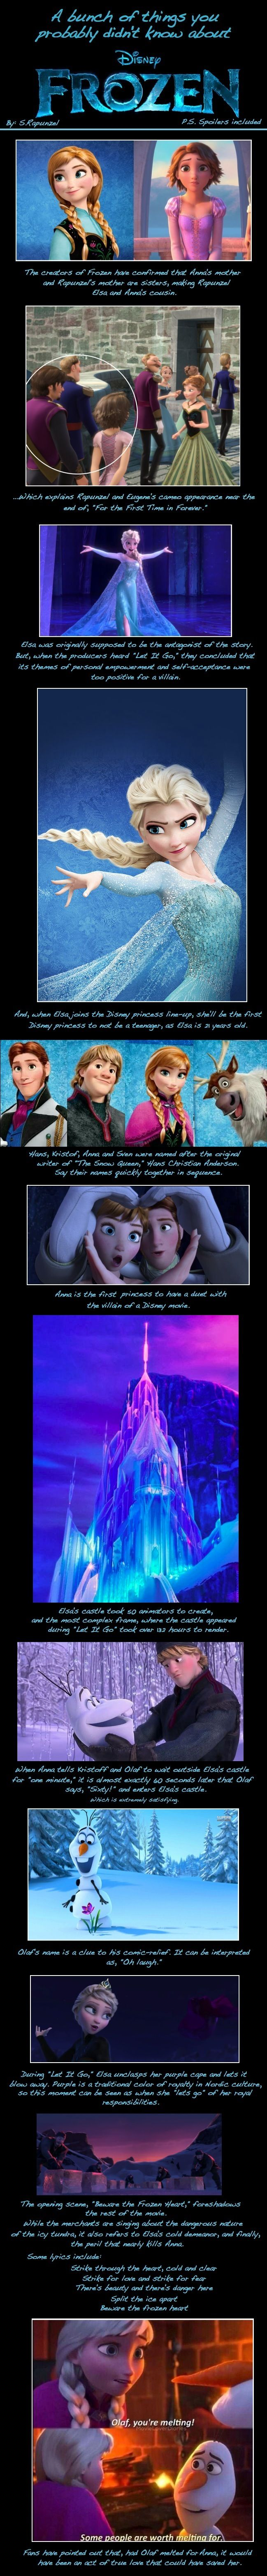 A bunch of stuff you probably didn't know about Frozen